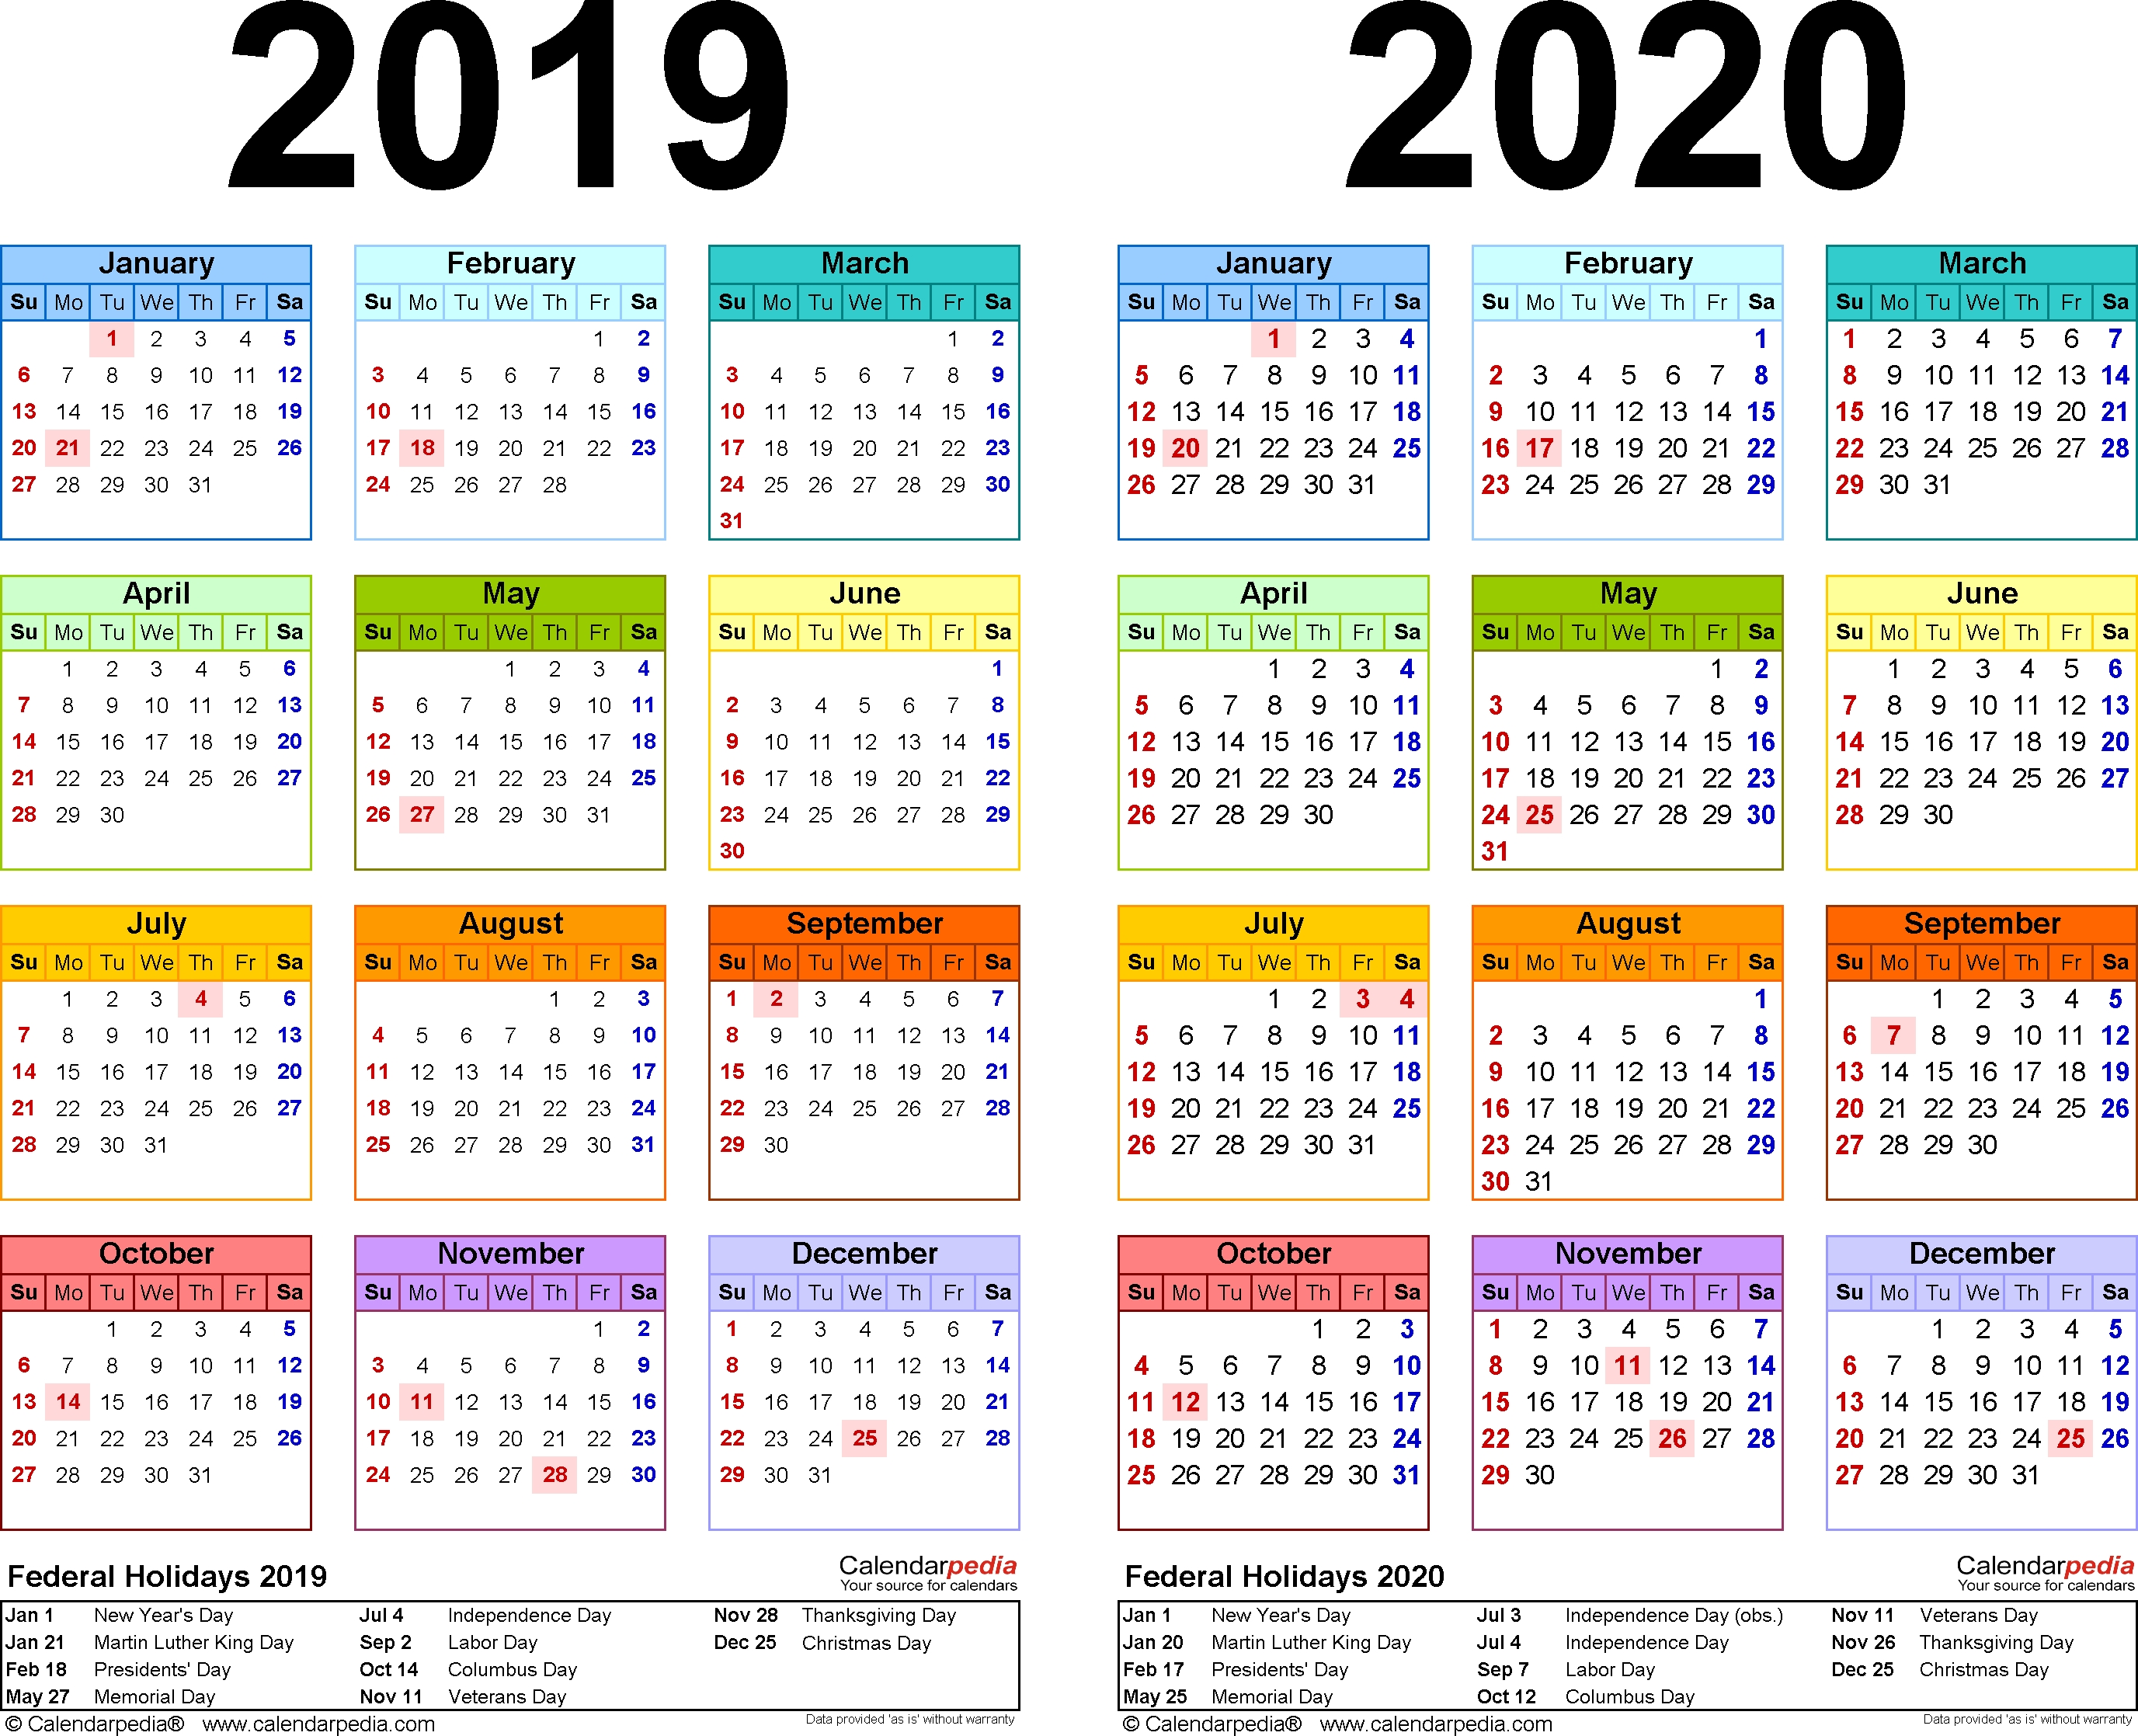 2019-2020 Calendar - Free Printable Two-Year Pdf Calendars for Free Printable 2019 2020 Calendar